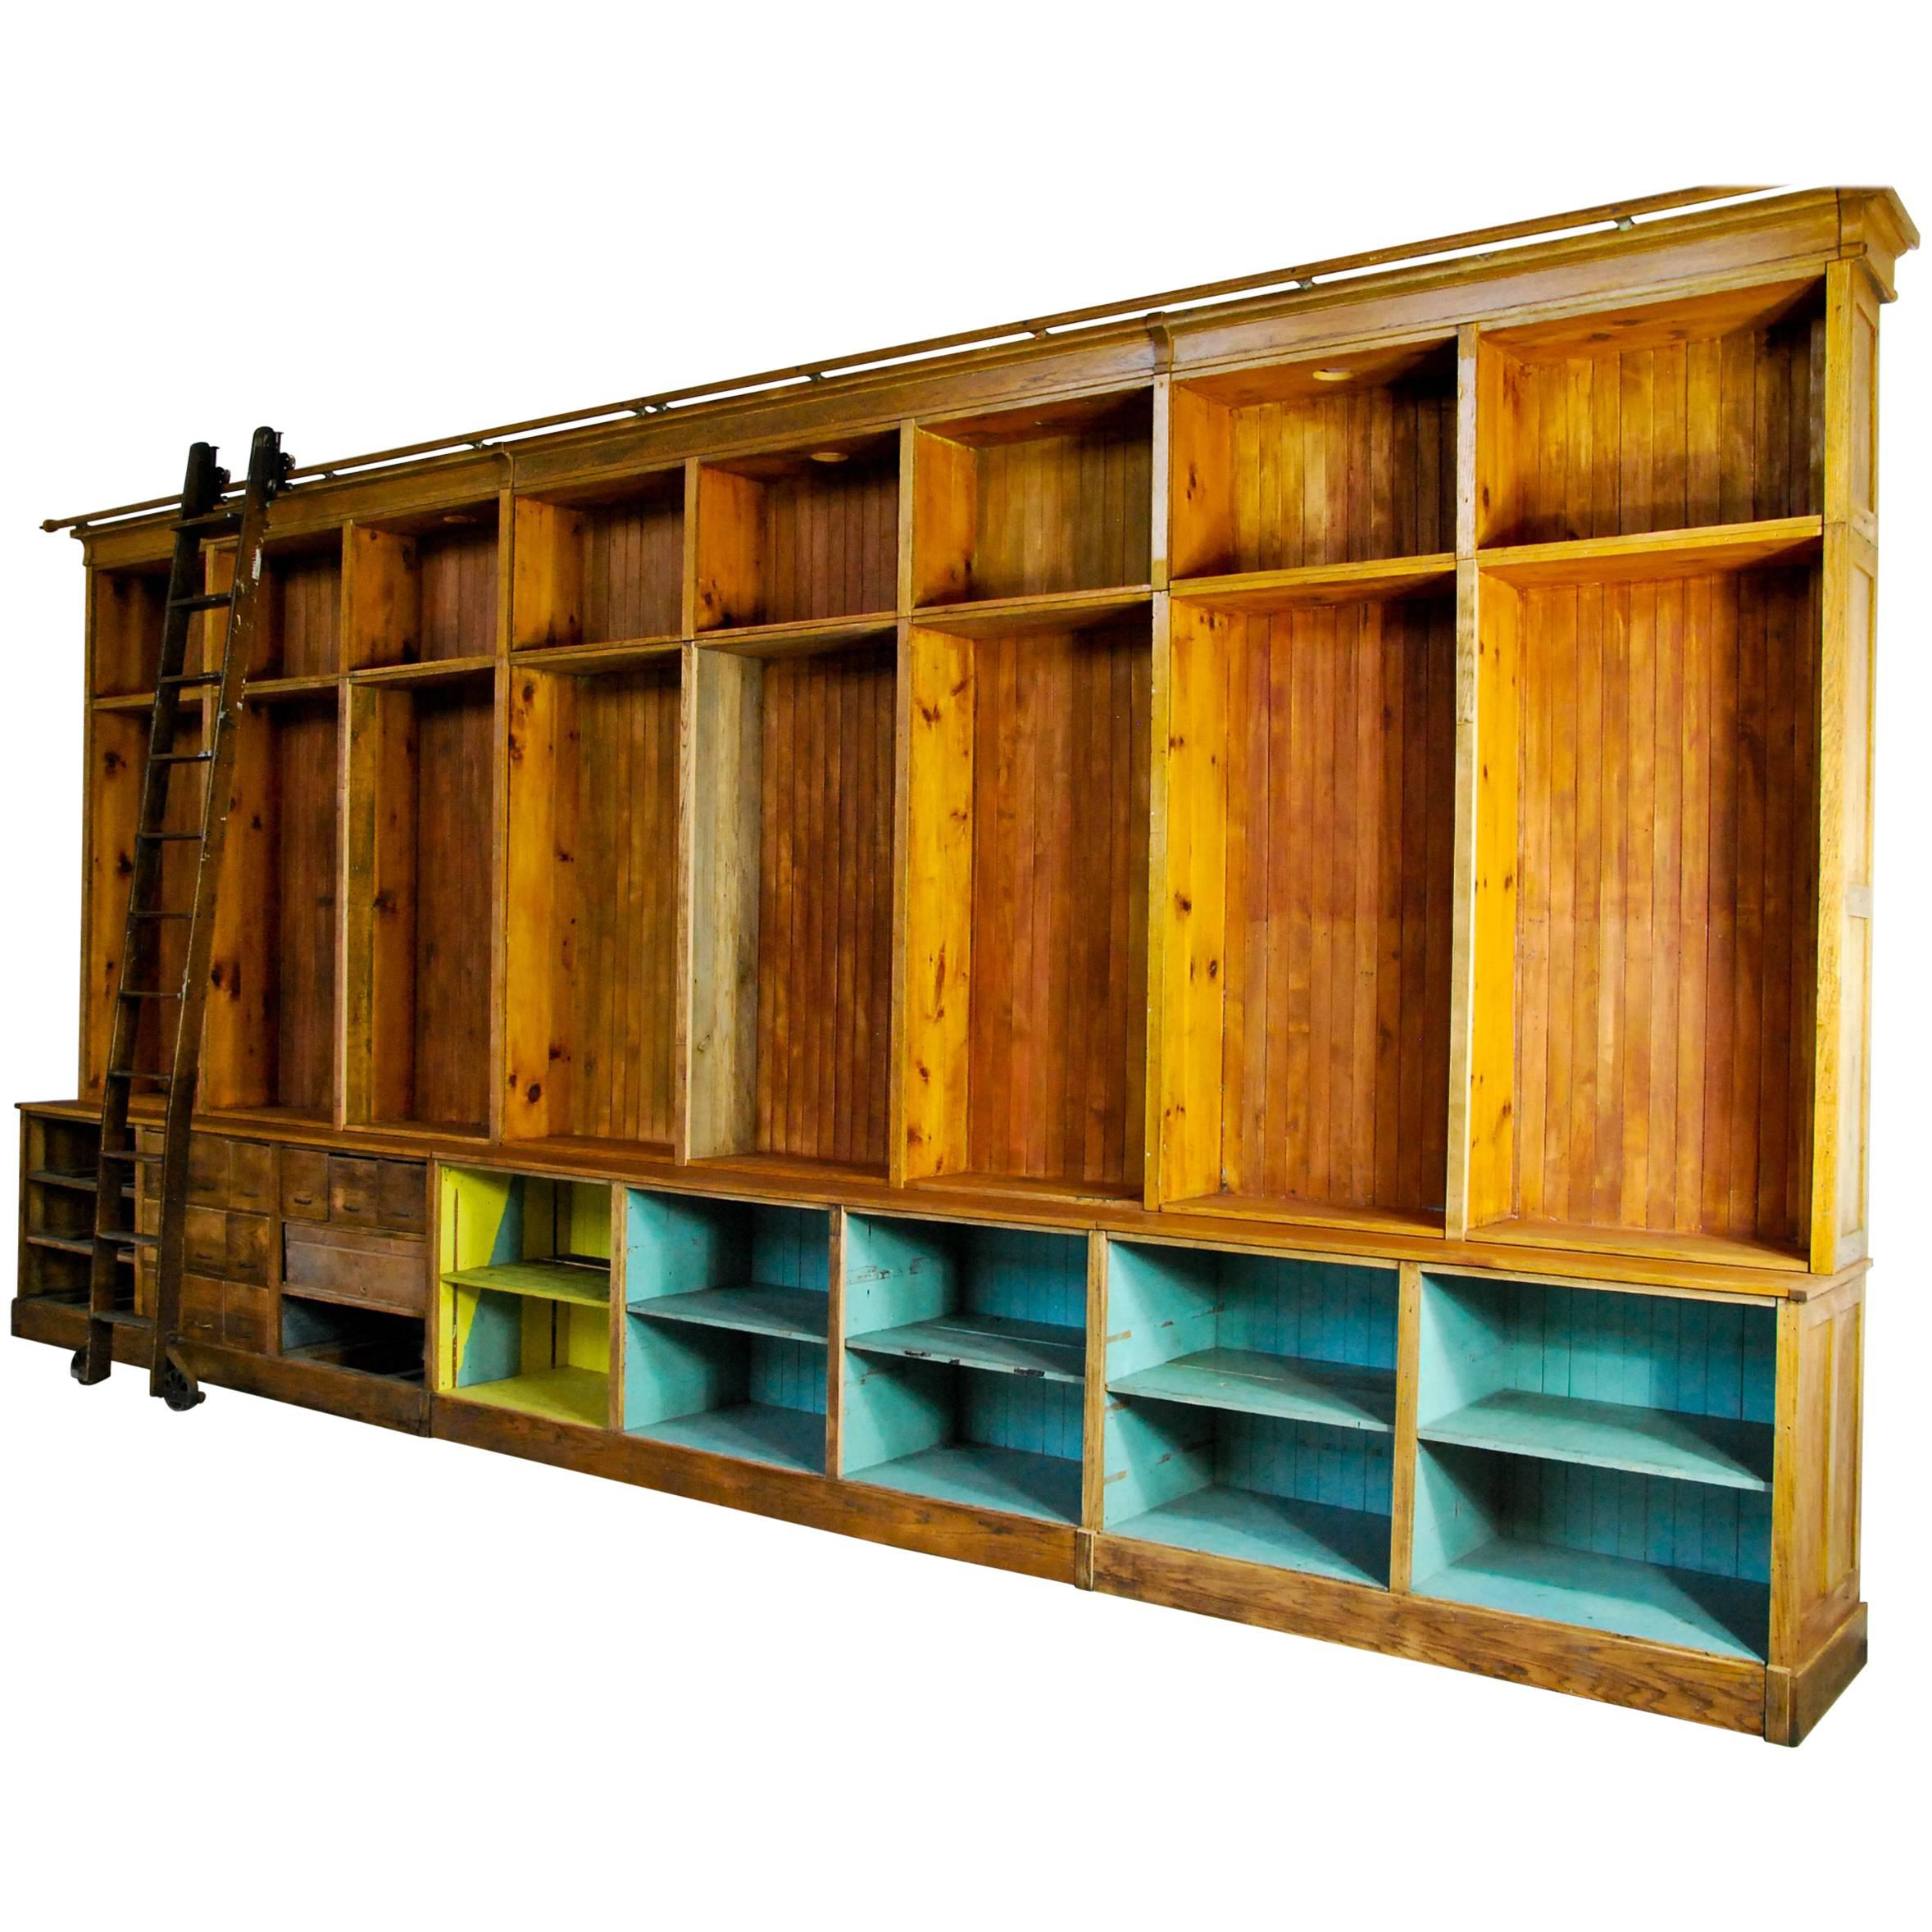 Machine Age Apothecary Cabinets